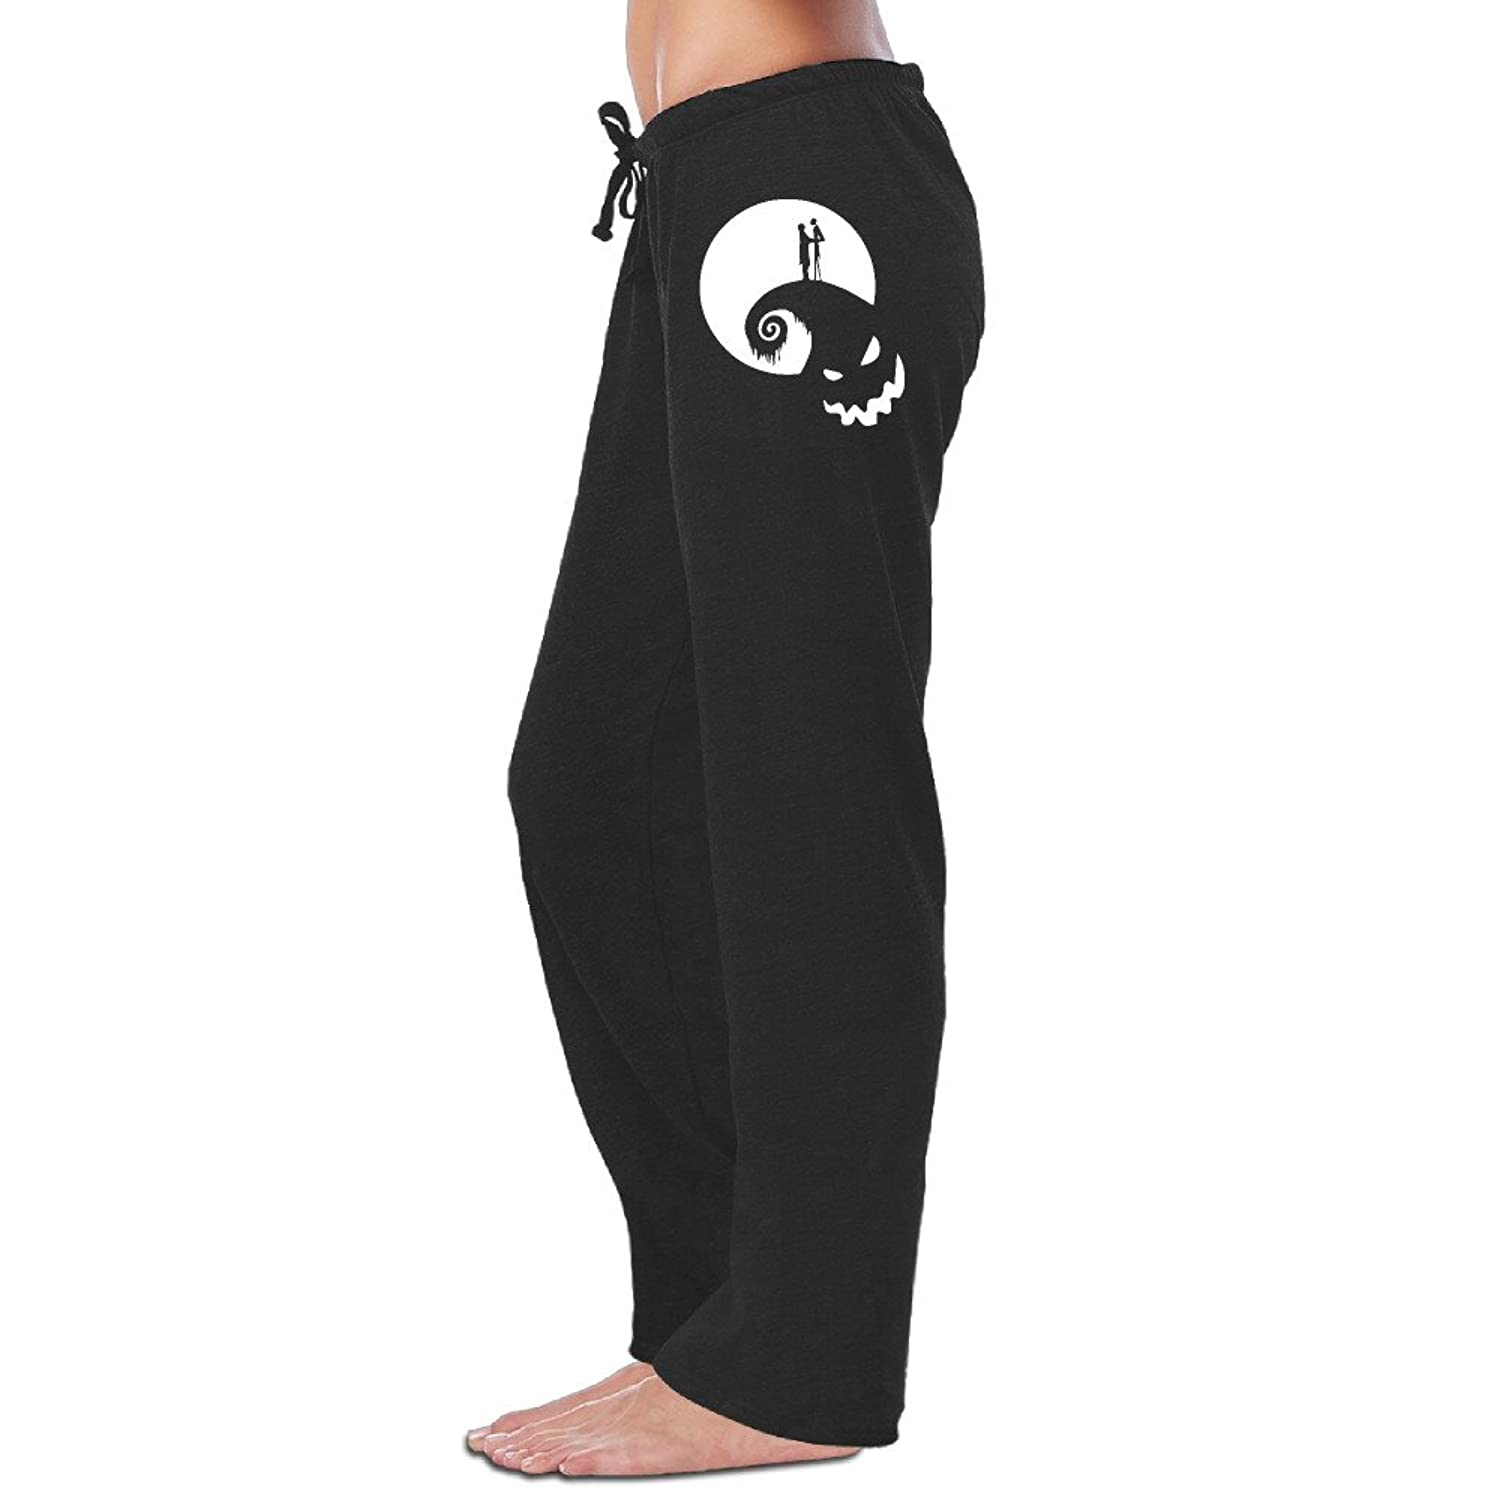 NNTBJ Women's The Night Before Christmas Sweatpant Running Pant